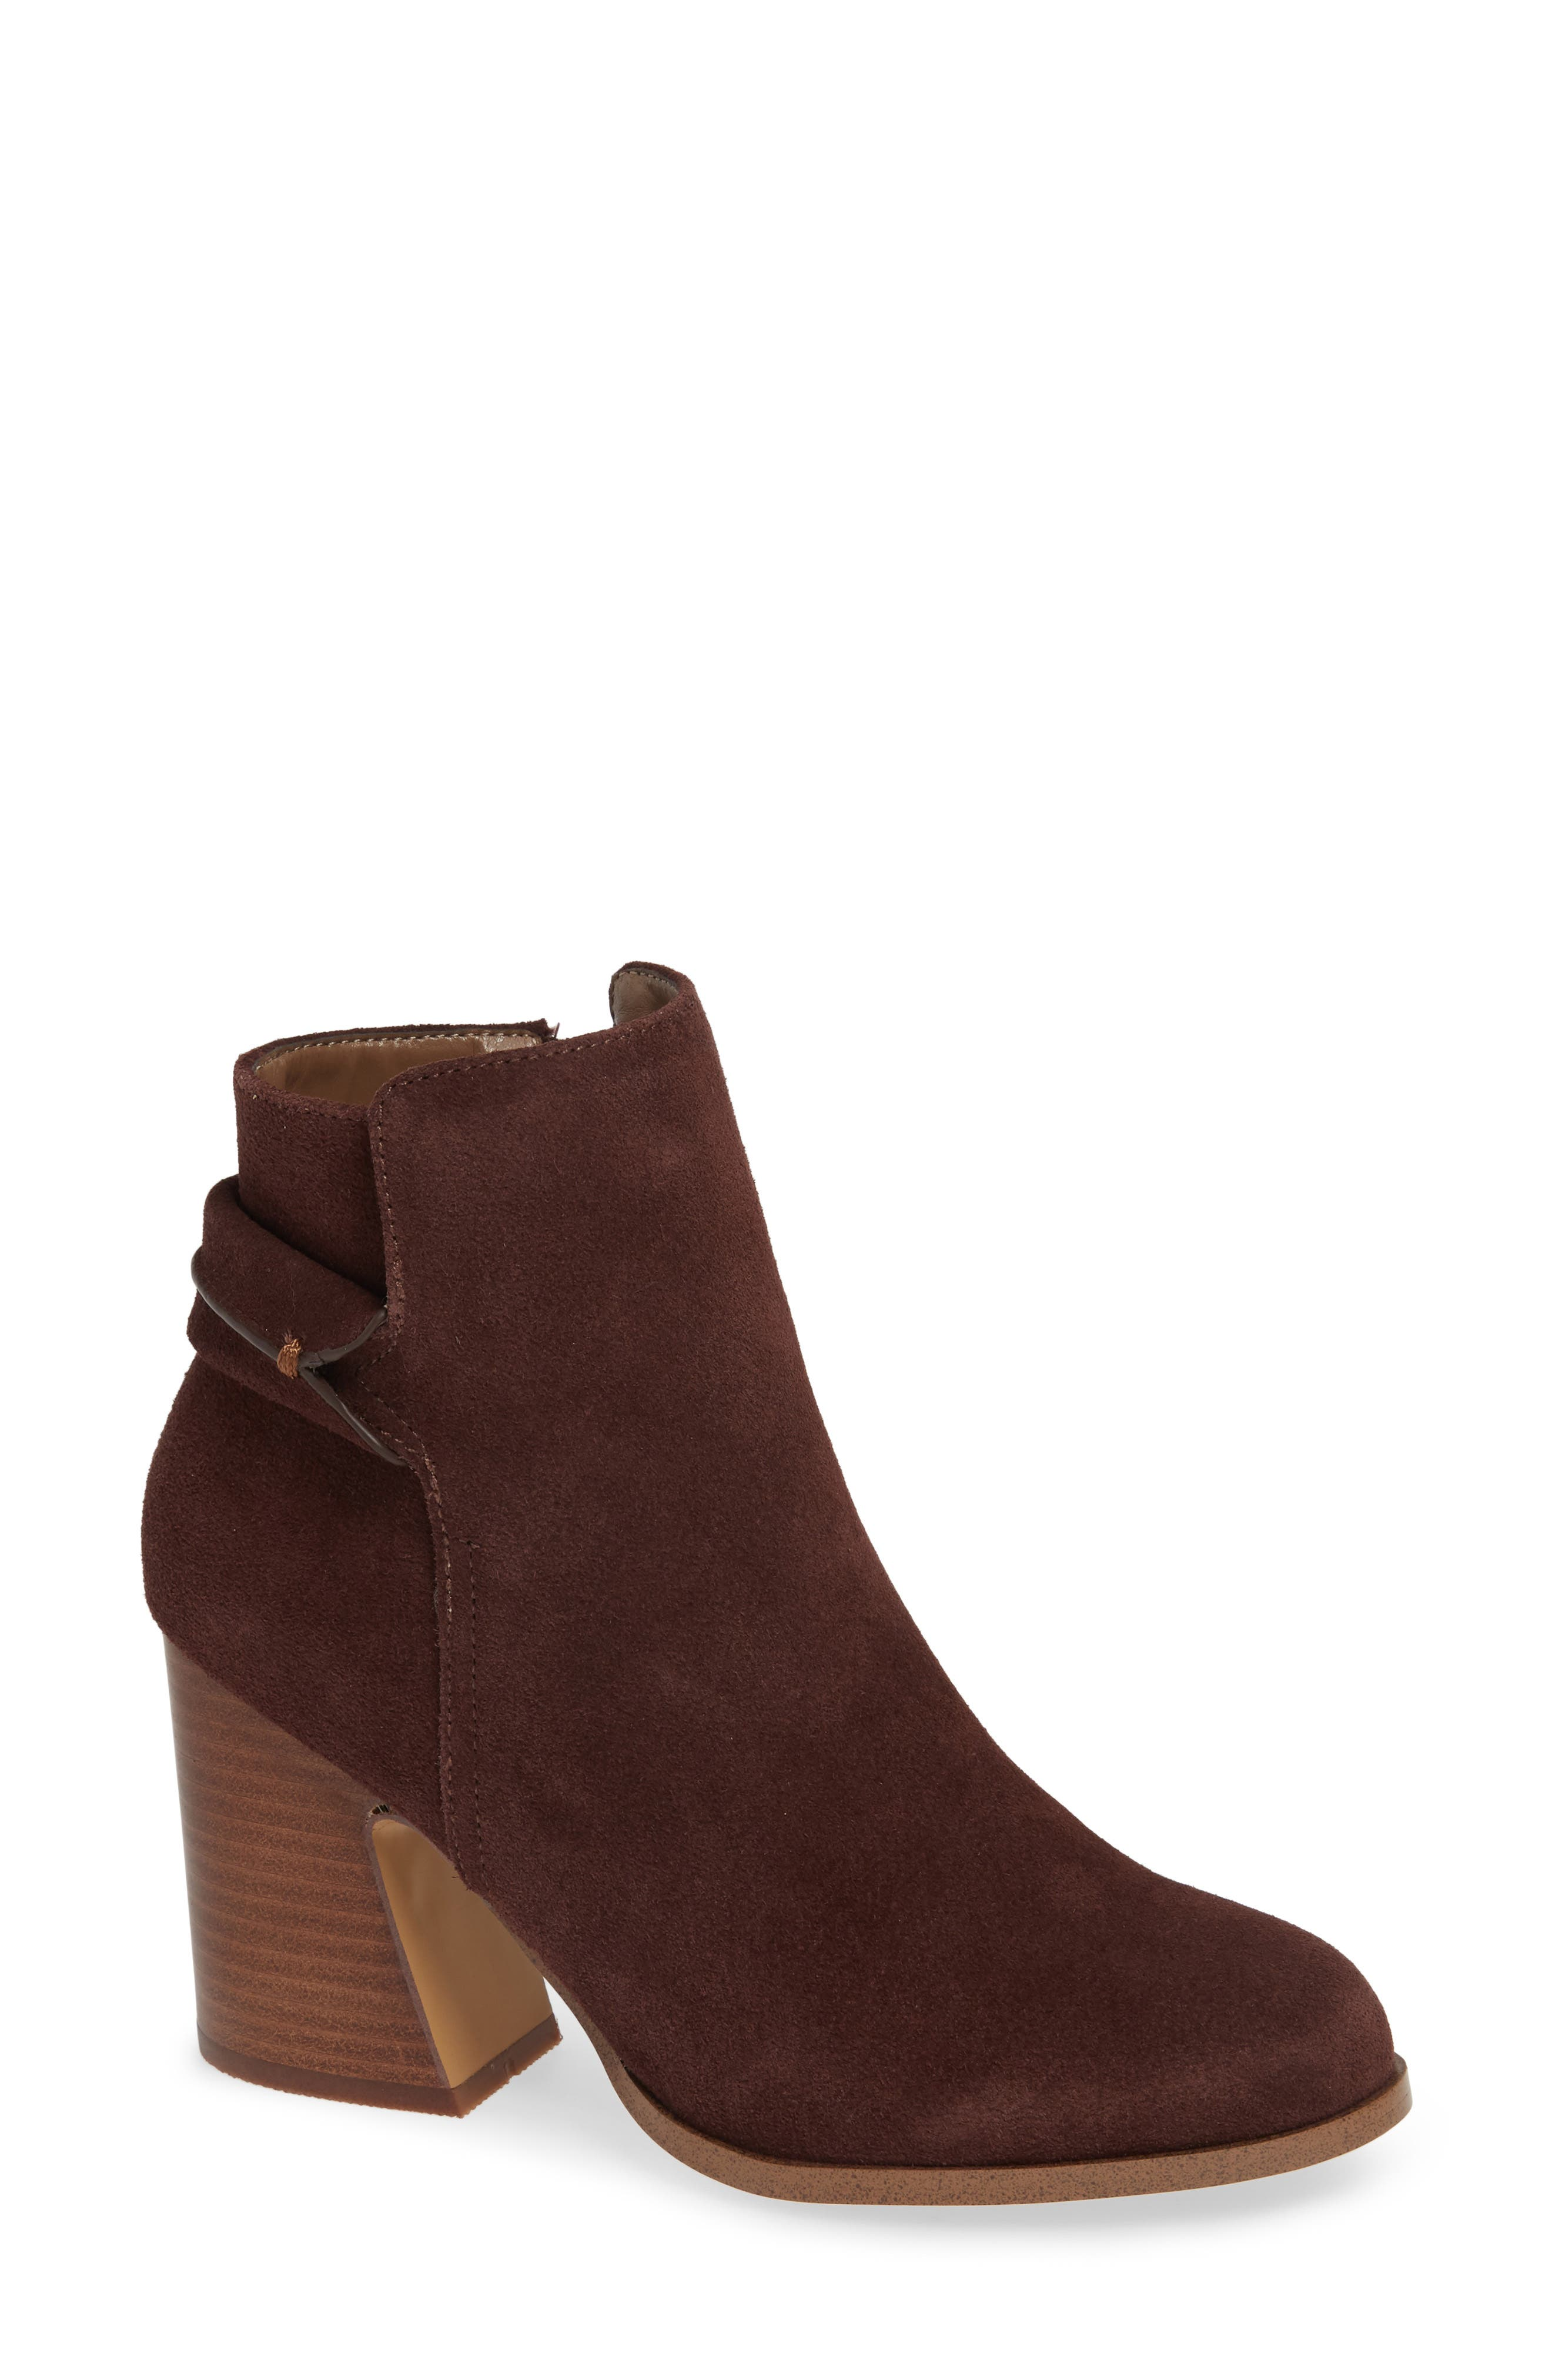 Kensie Surrey Bootie- Brown